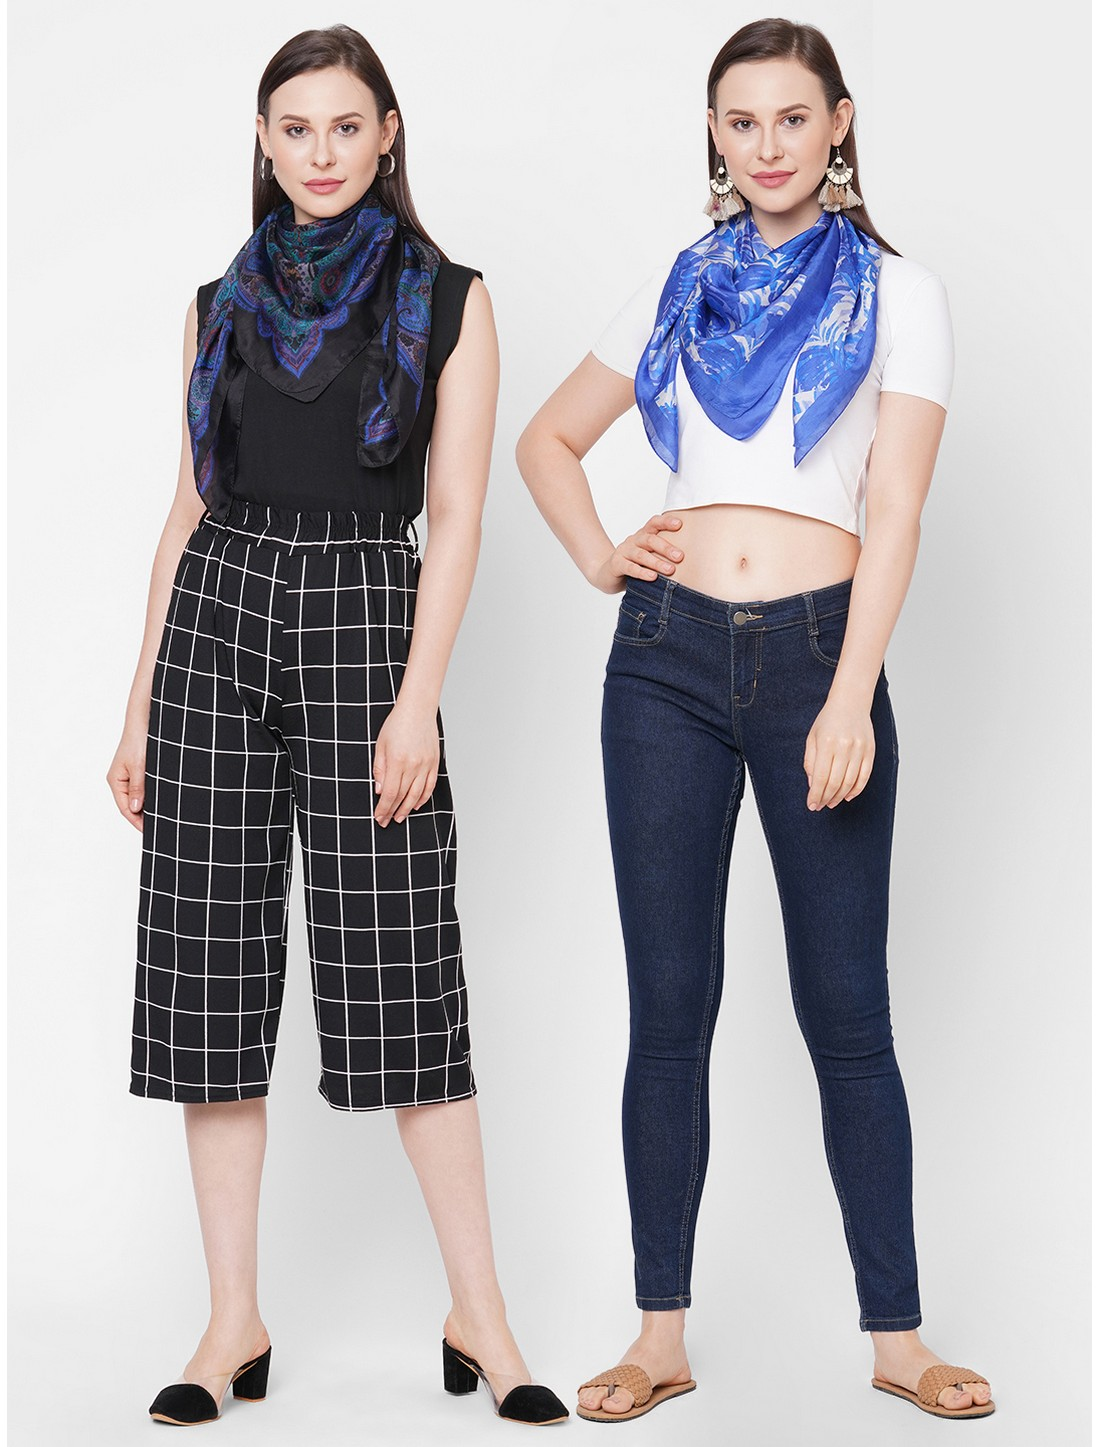 Get Wrapped | Get Wrapped Soft Silk Square Scarf For Women - Combo Pack of 2